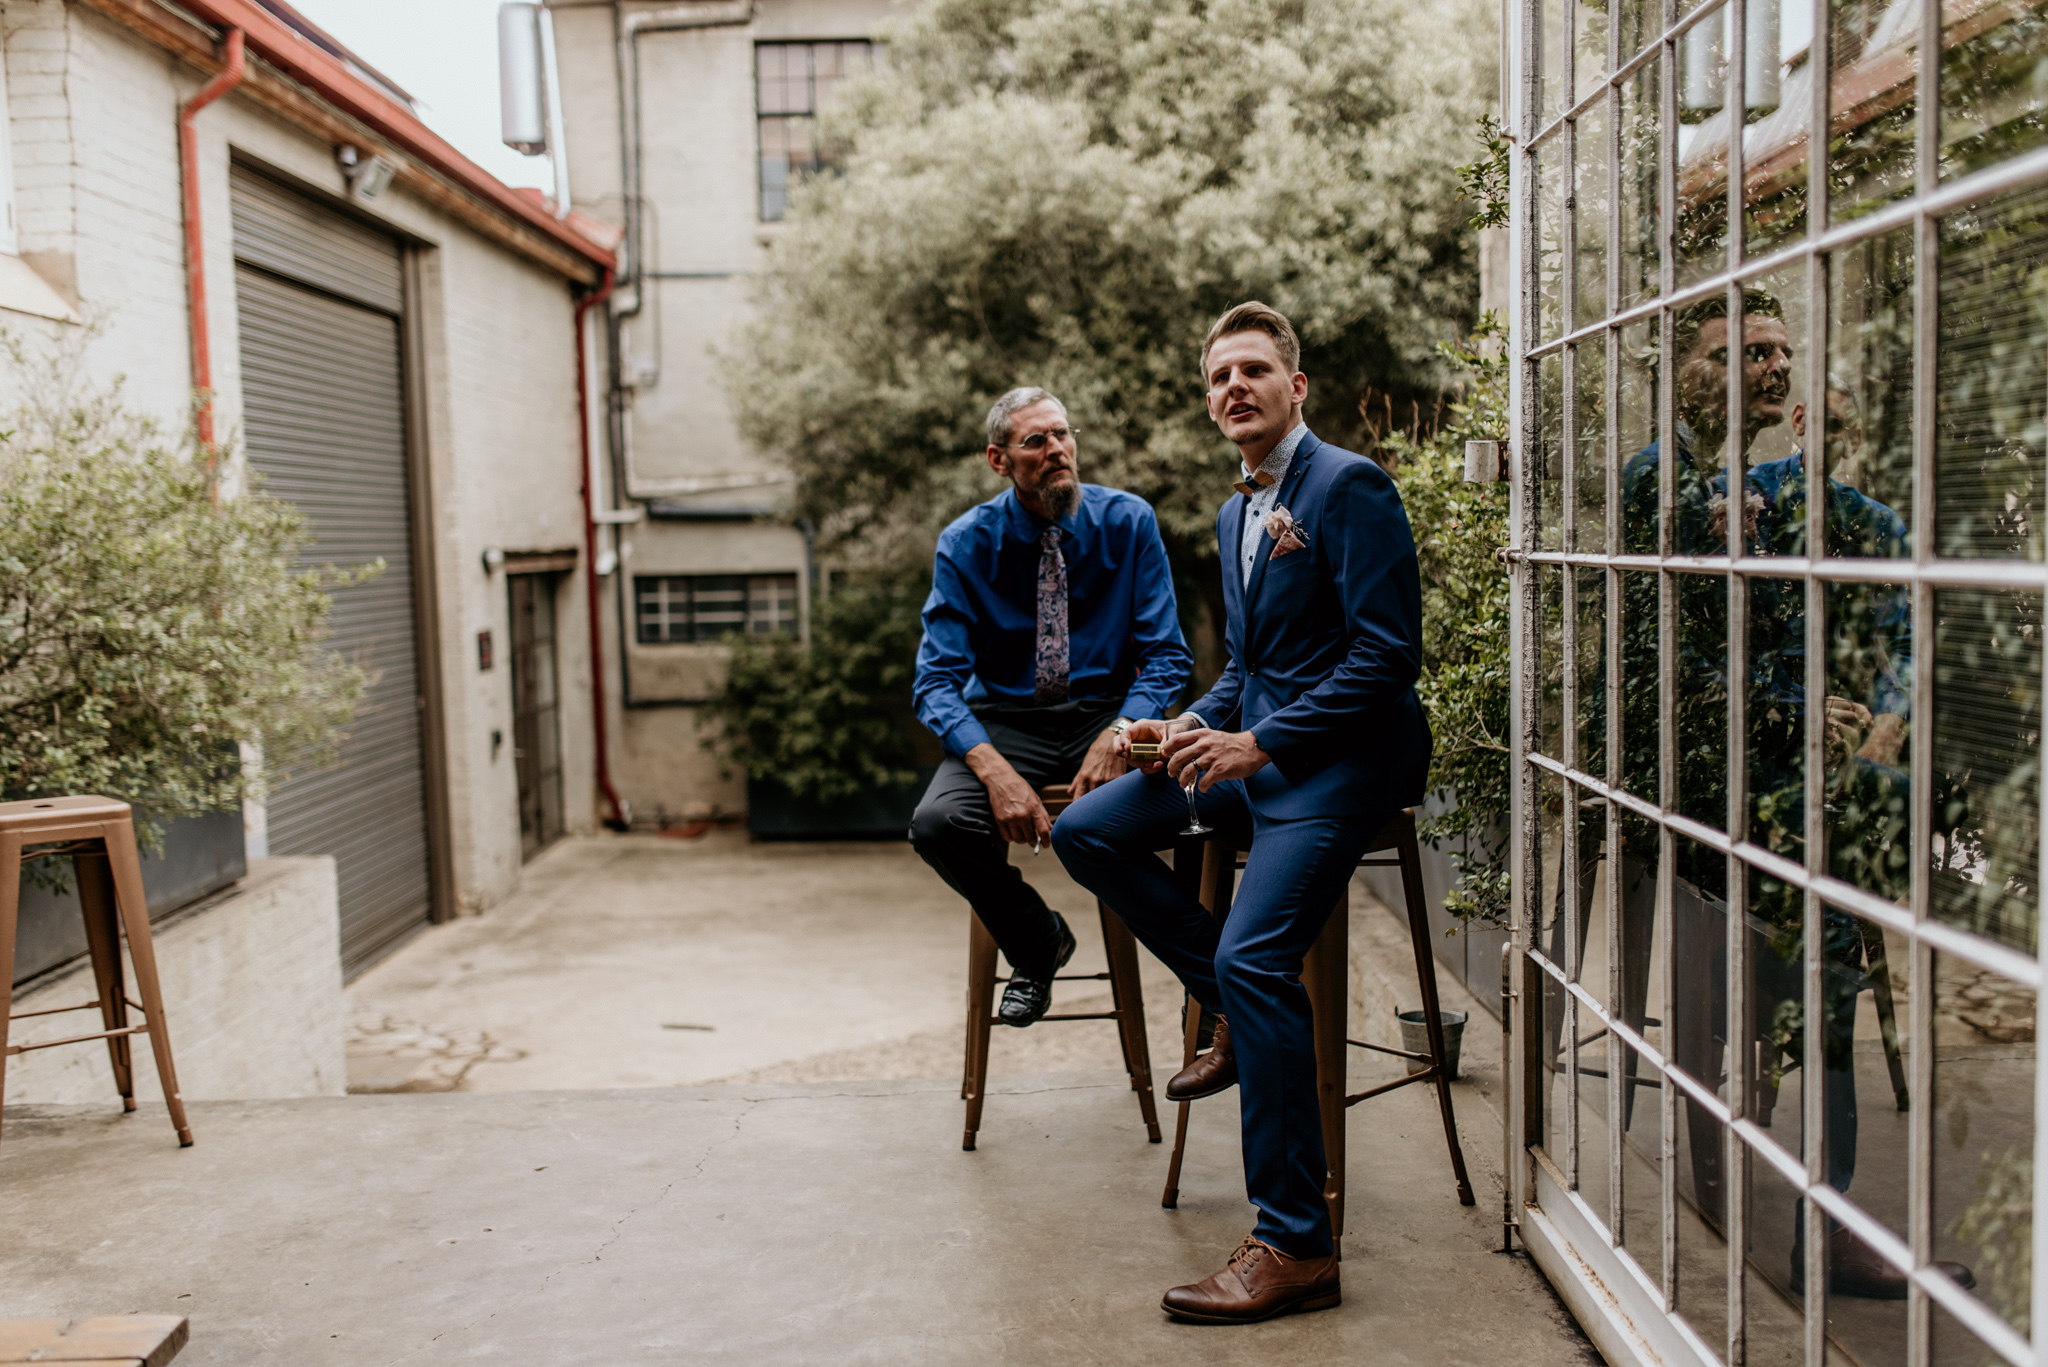 Groom and uncle both in blue suits sit together at a johannesburg city wedding